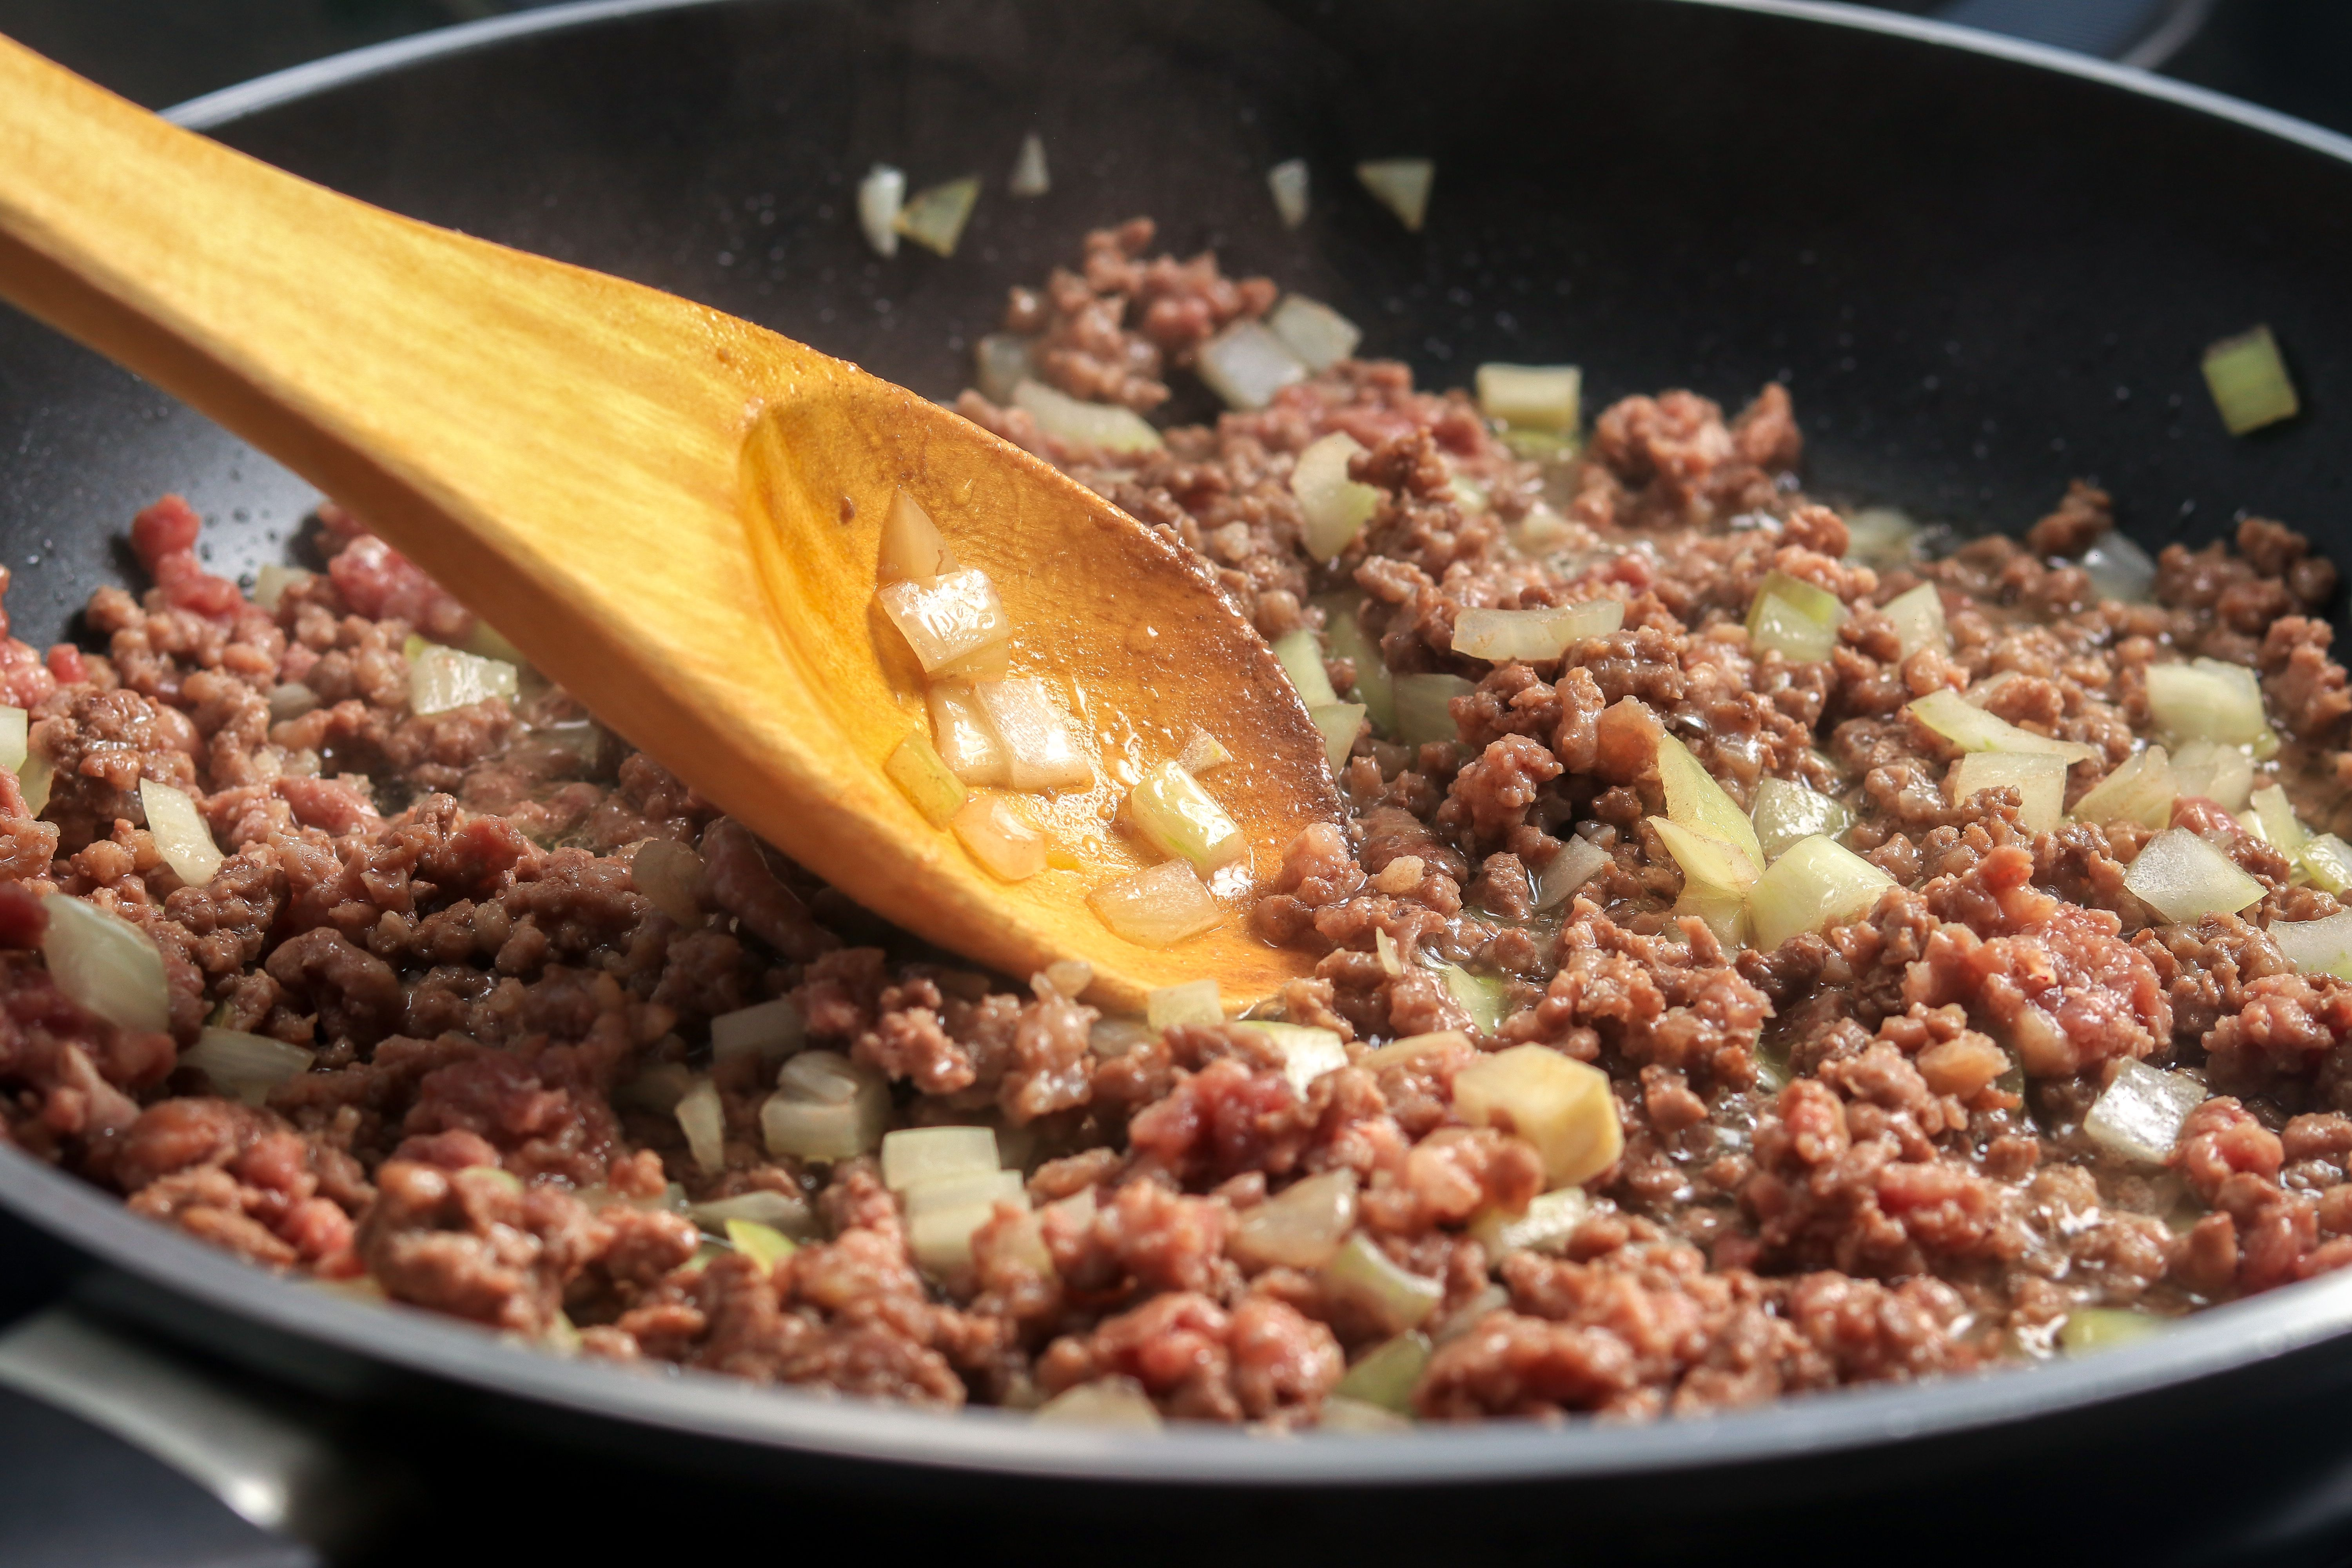 Ground beef and onions in frying pan